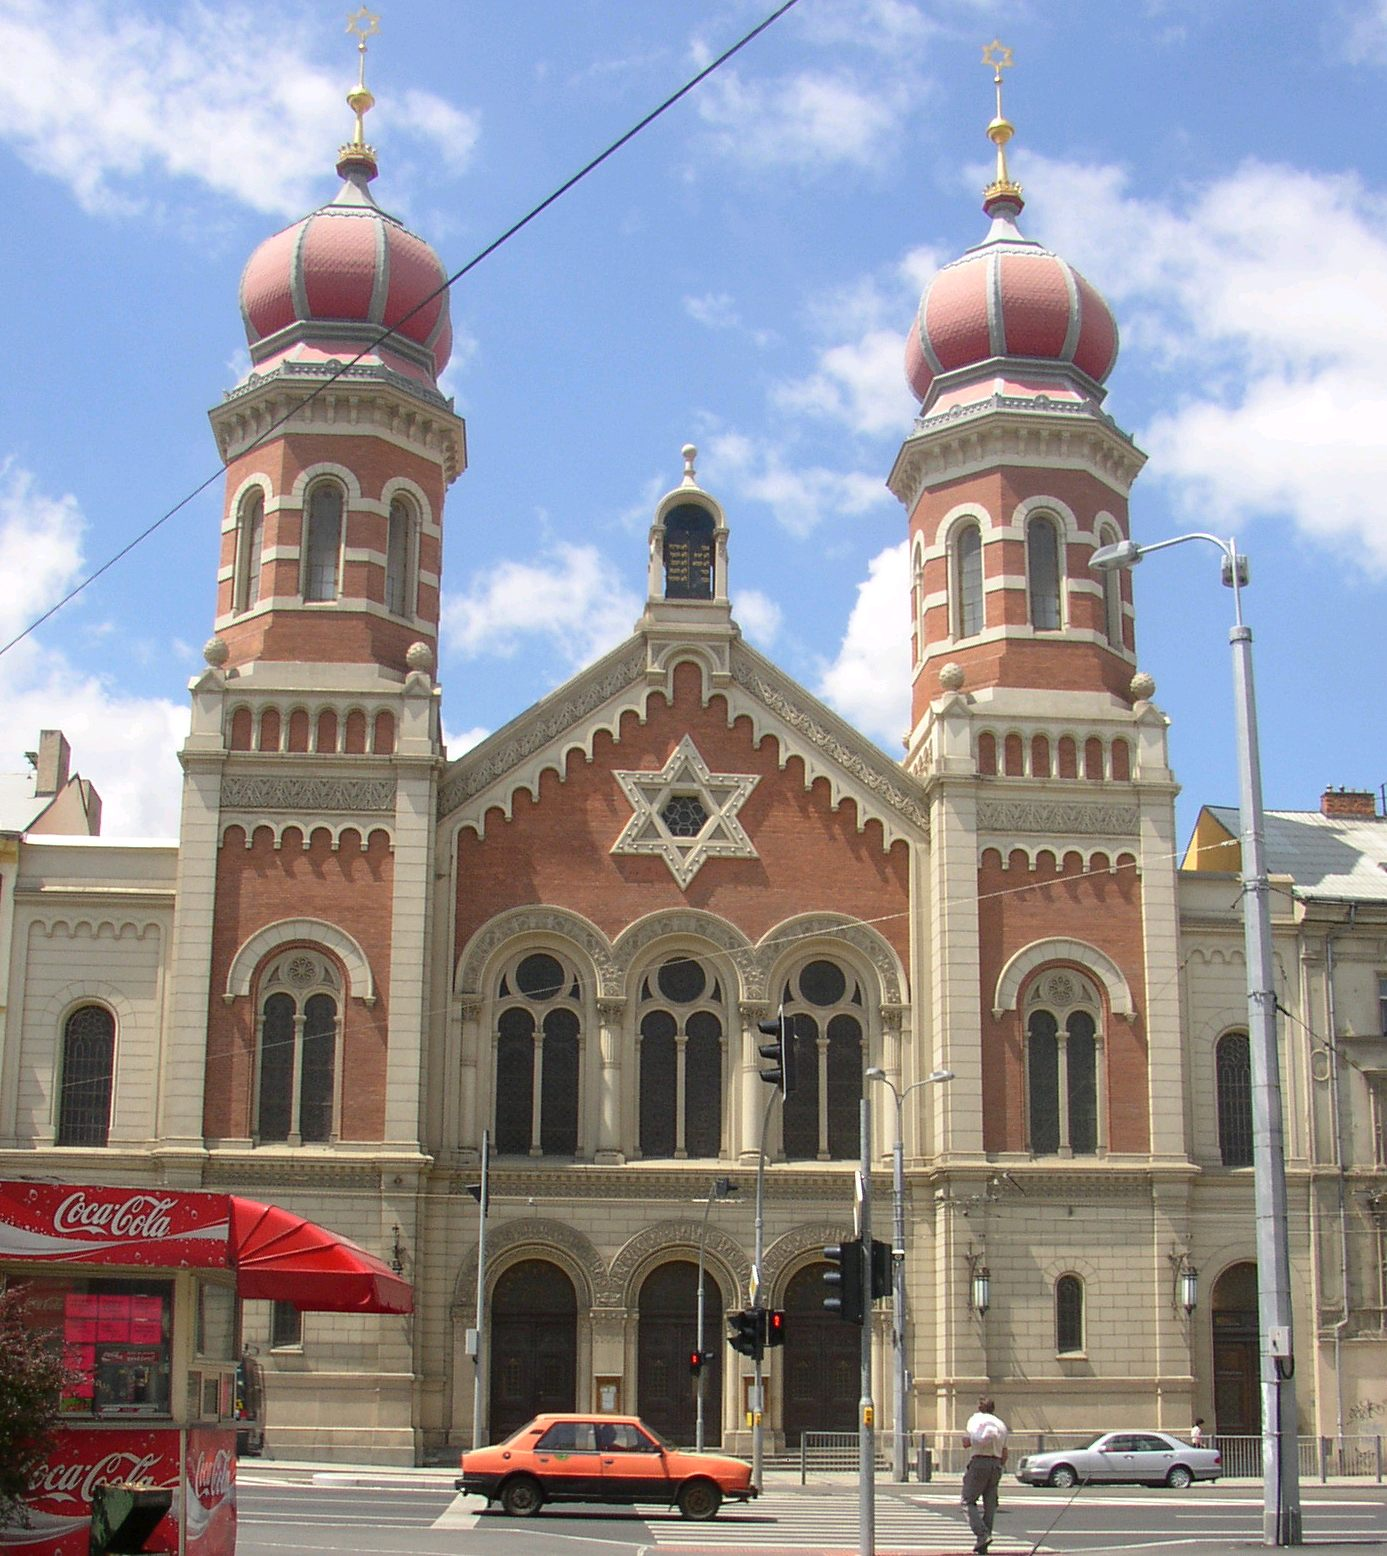 File:Great Synagogue Plzen CZ.jpg - Wikimedia Commons